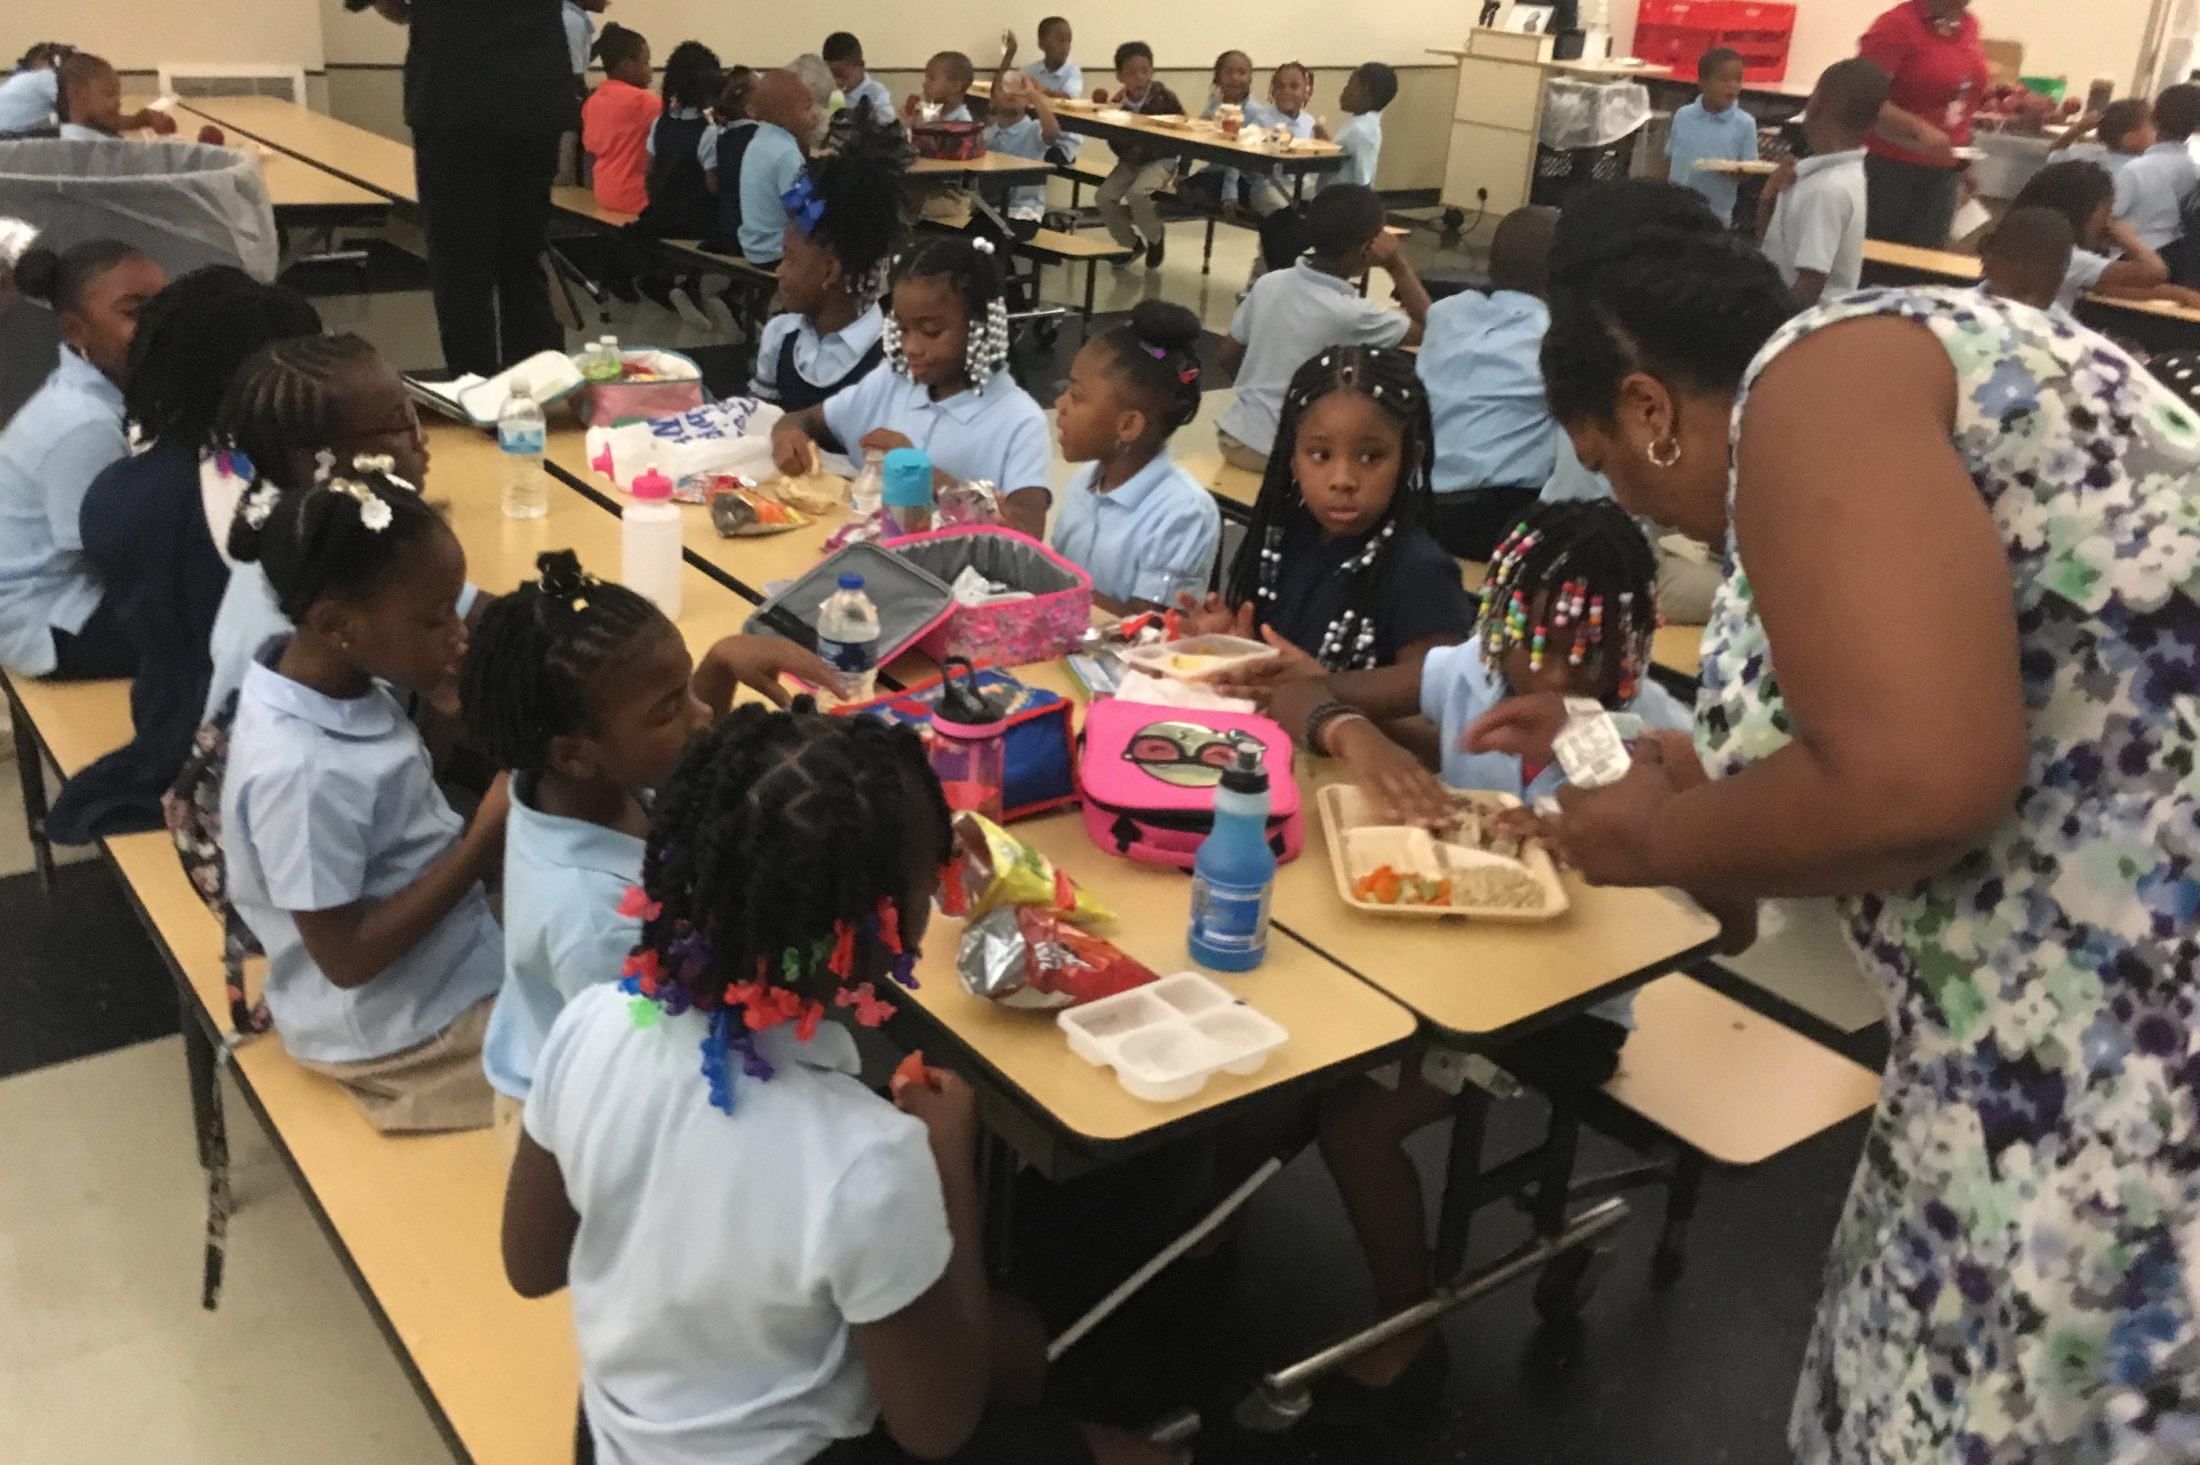 Students in the lunchroom at Golightly Education Center in Detroit. Some students do not get enough to eat at home, so many districts will distribute breakfast and lunch to students while schools are closed.